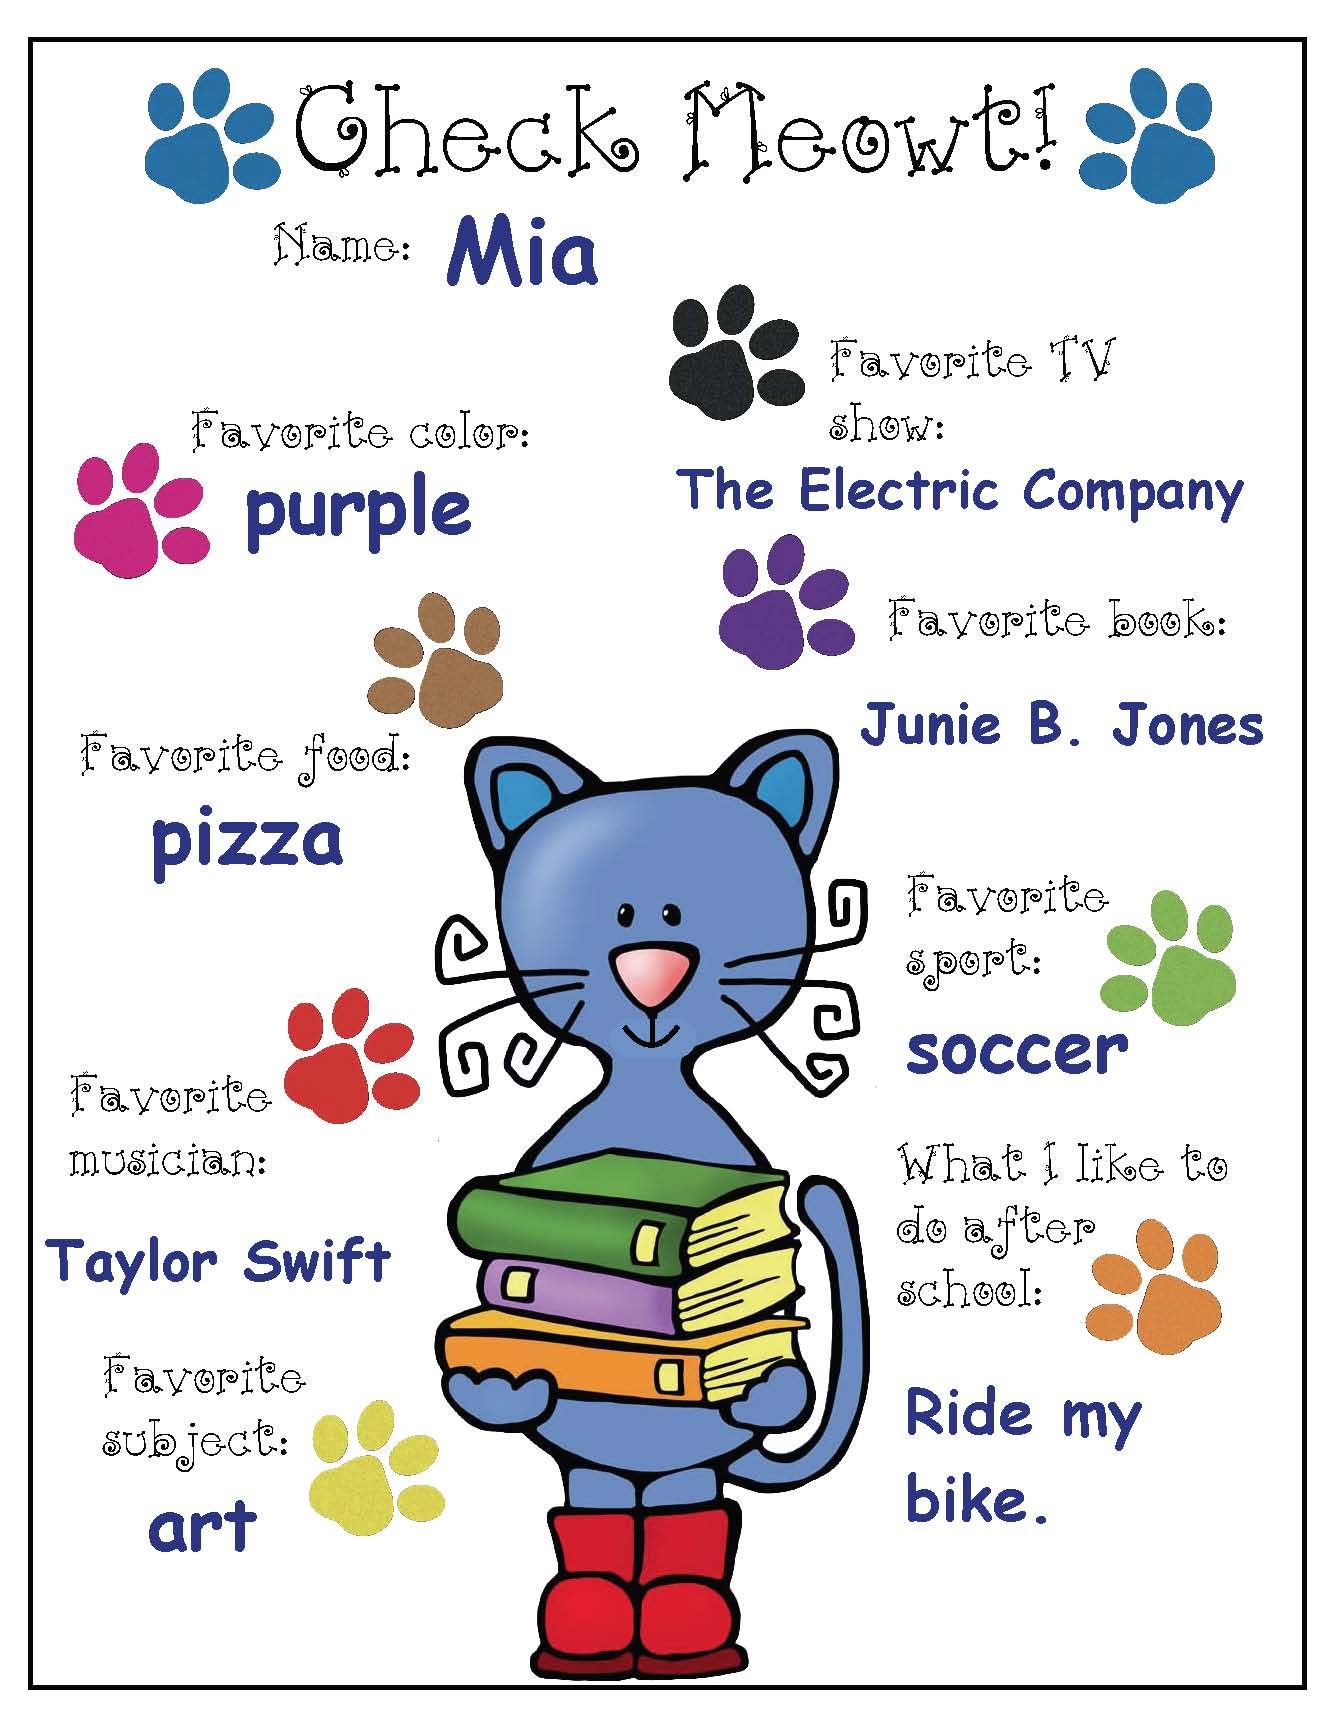 pete the cat activities, pete the cat crafts, cat crafts, back to school writing prompts, back to school bulletin boards, icebreakers, icebreakers for back to school, check meowt, getting to know you activities